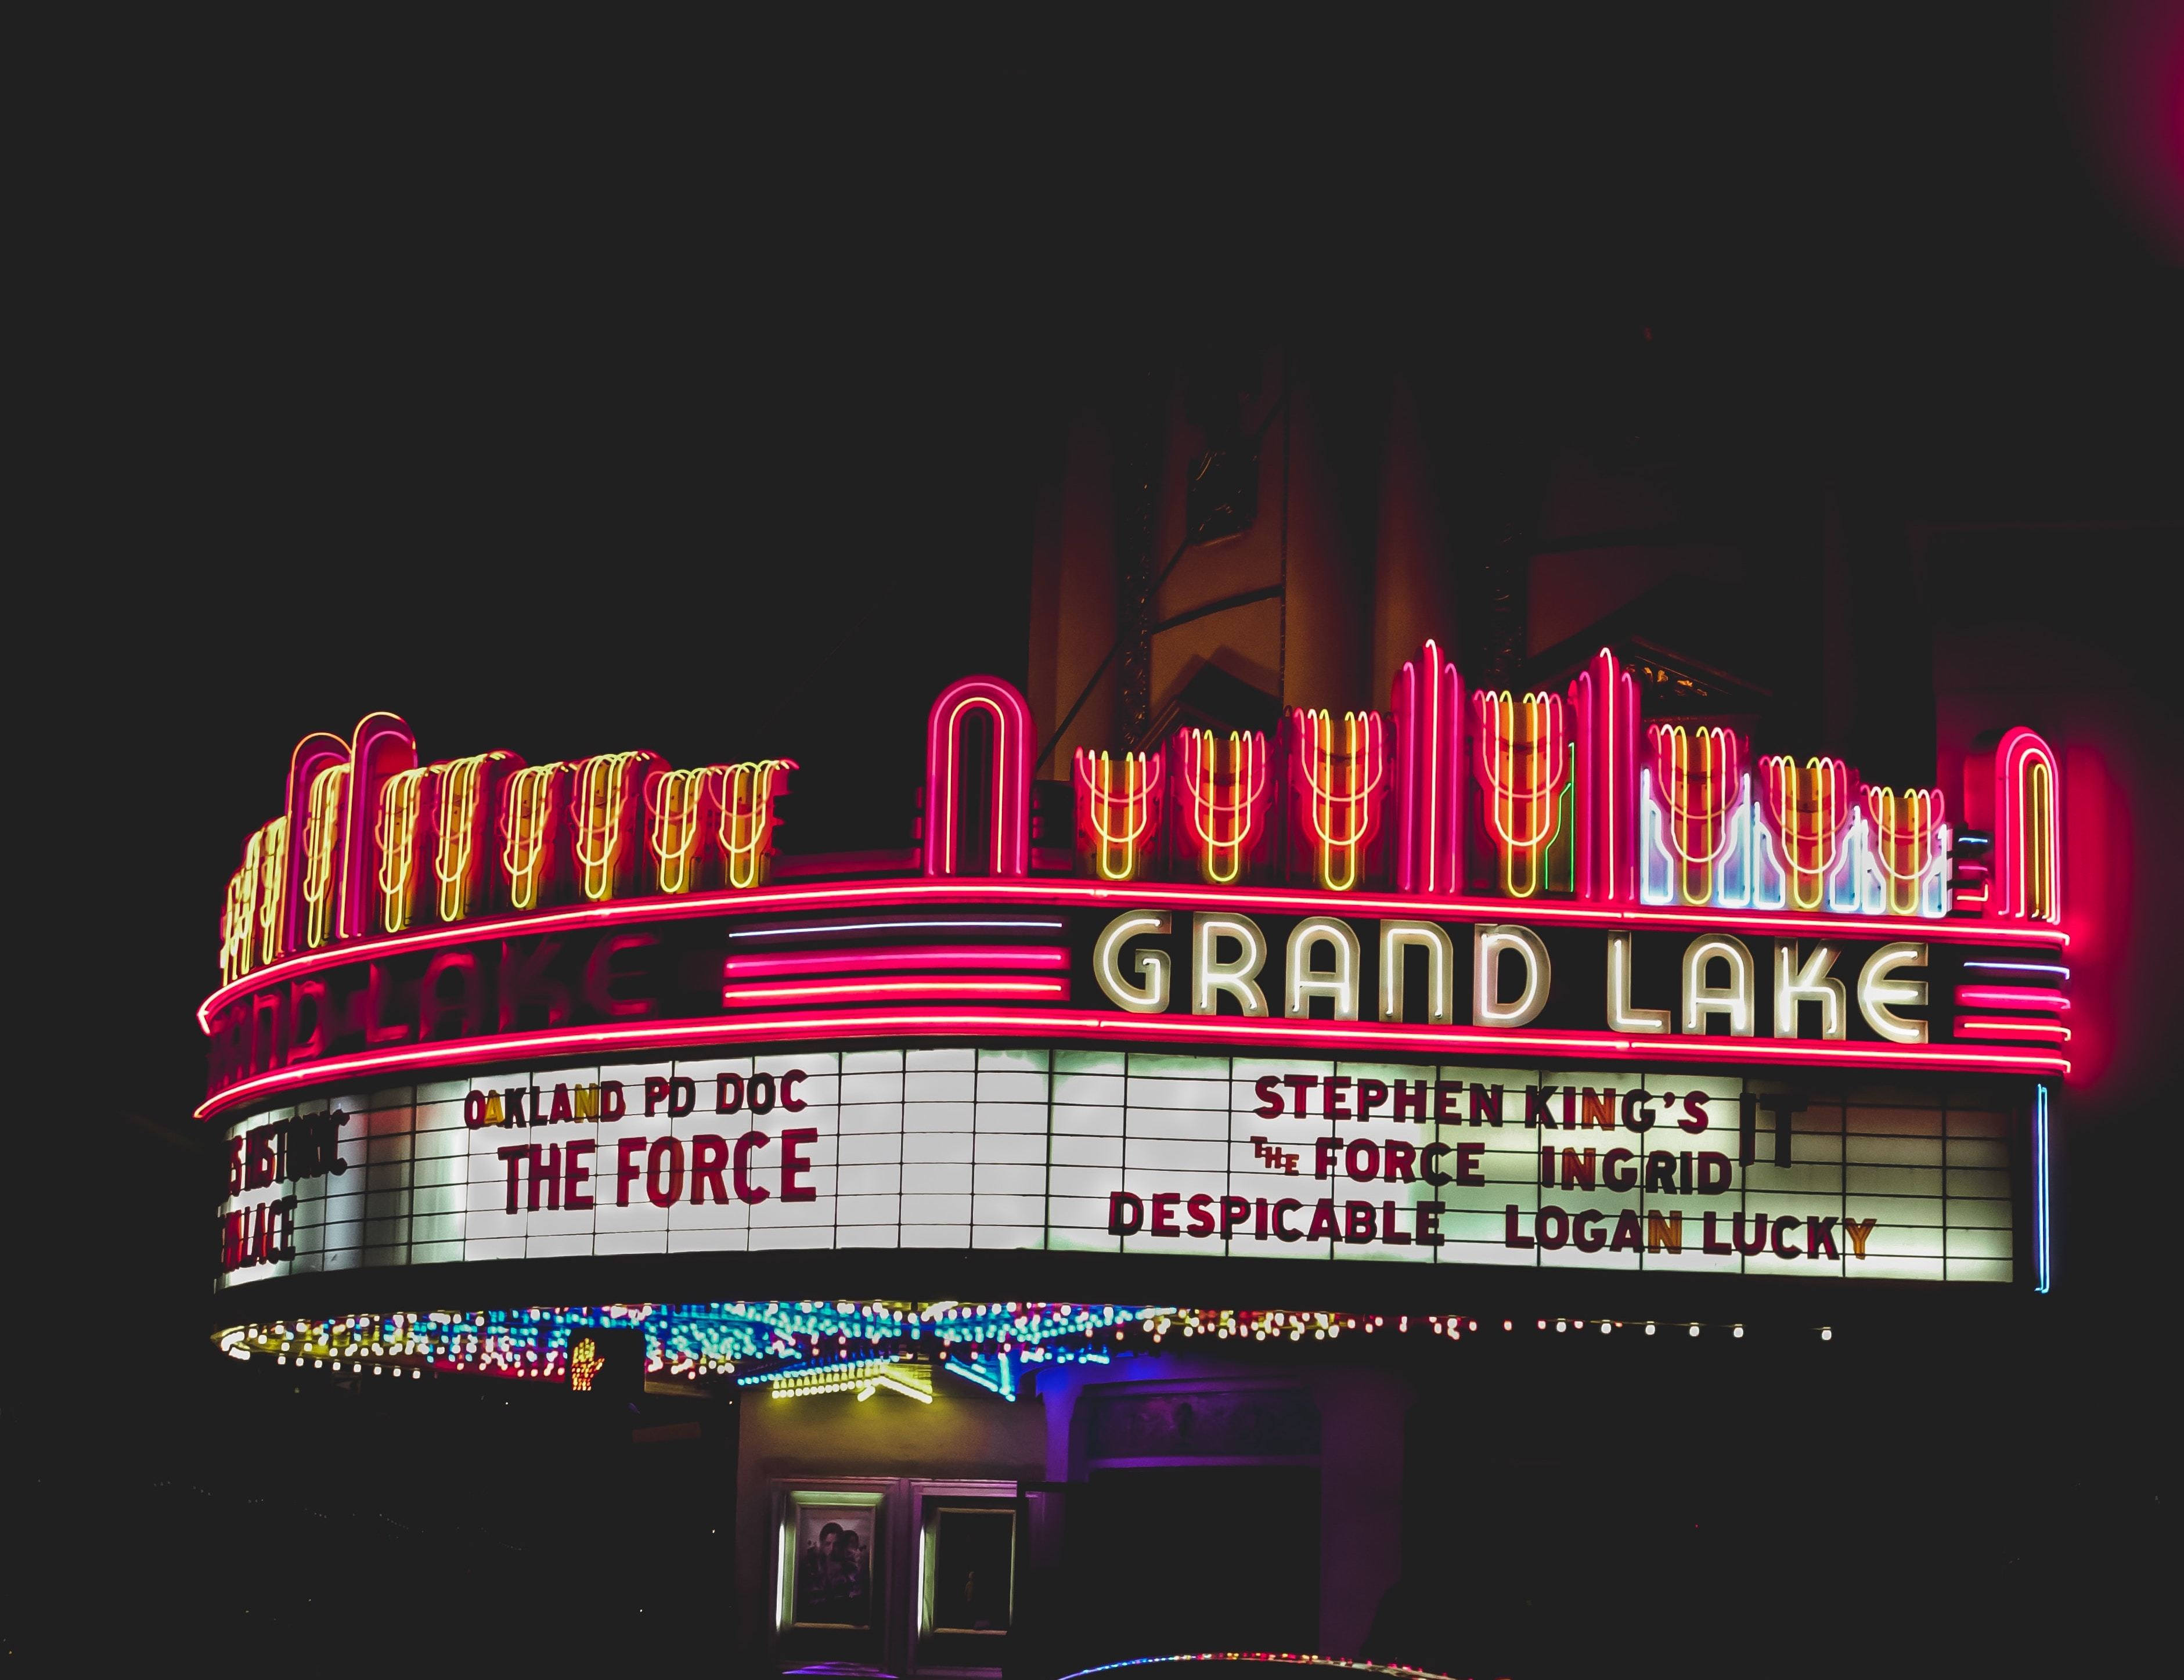 Nighttime photo of the Grand Lake Cinema marquee